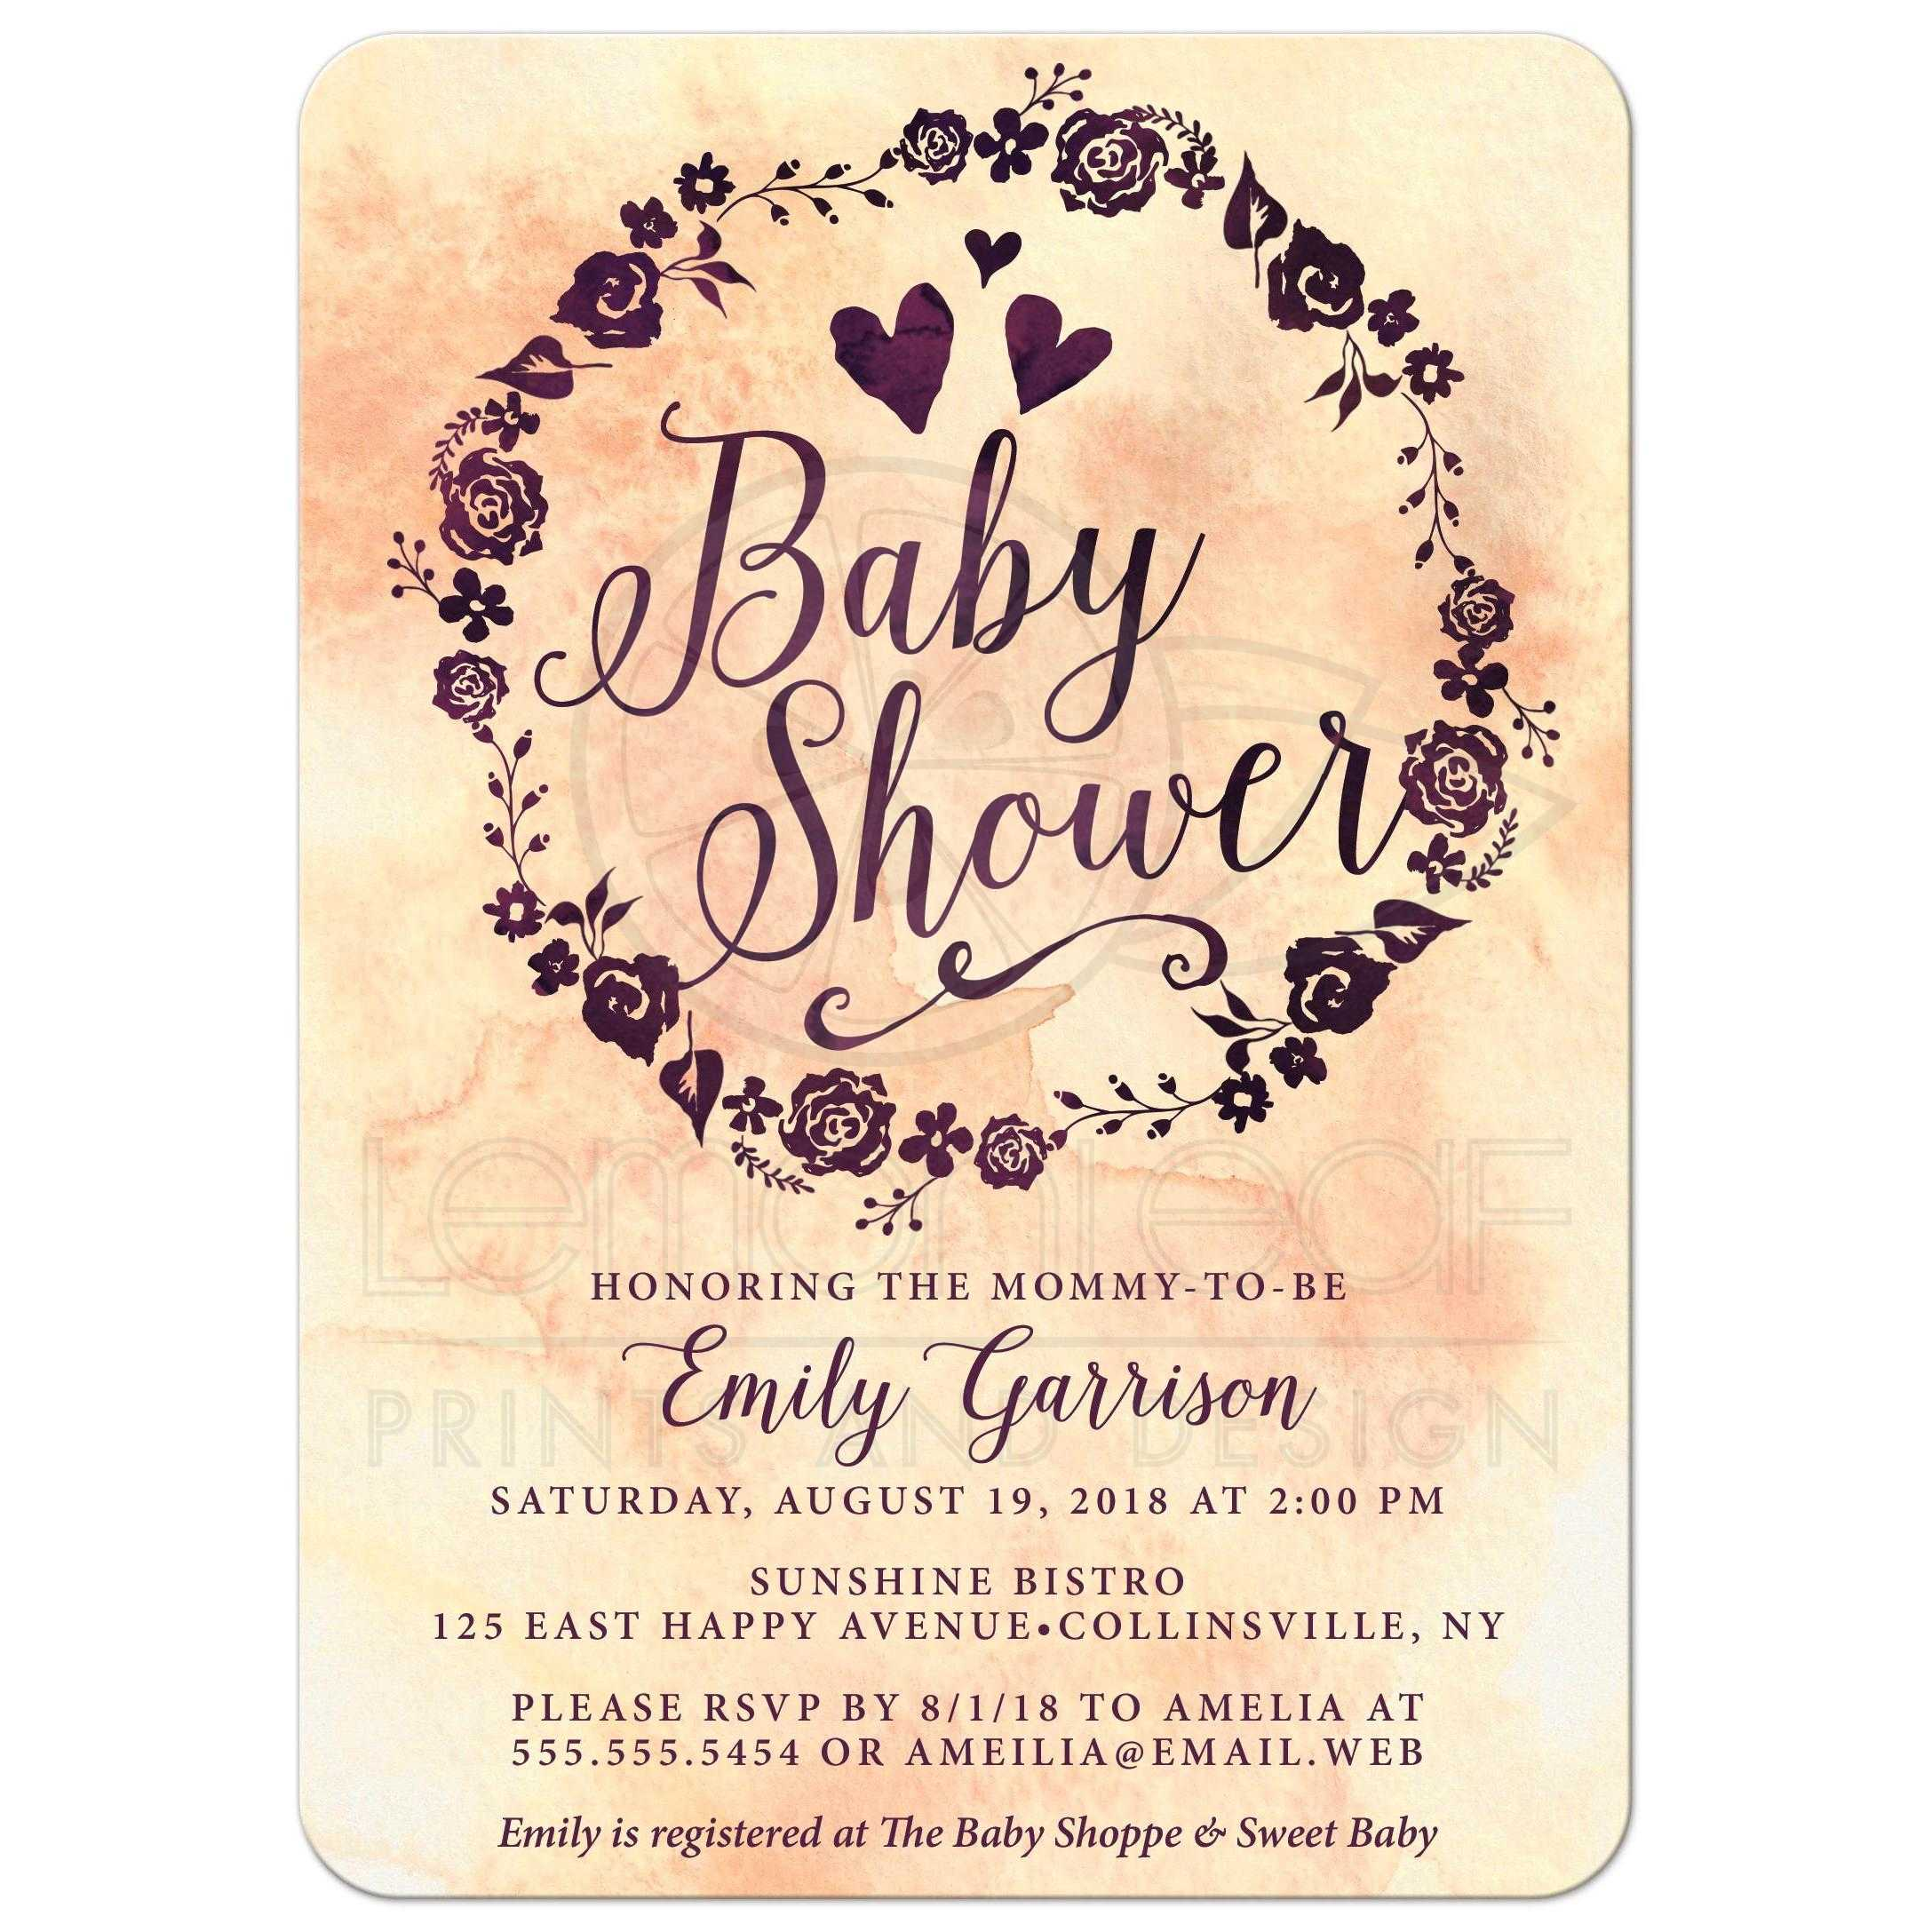 Watercolor Wreath Baby Shower Invitations Front Watercolor Wreath Baby  Shower Invitations Front ...